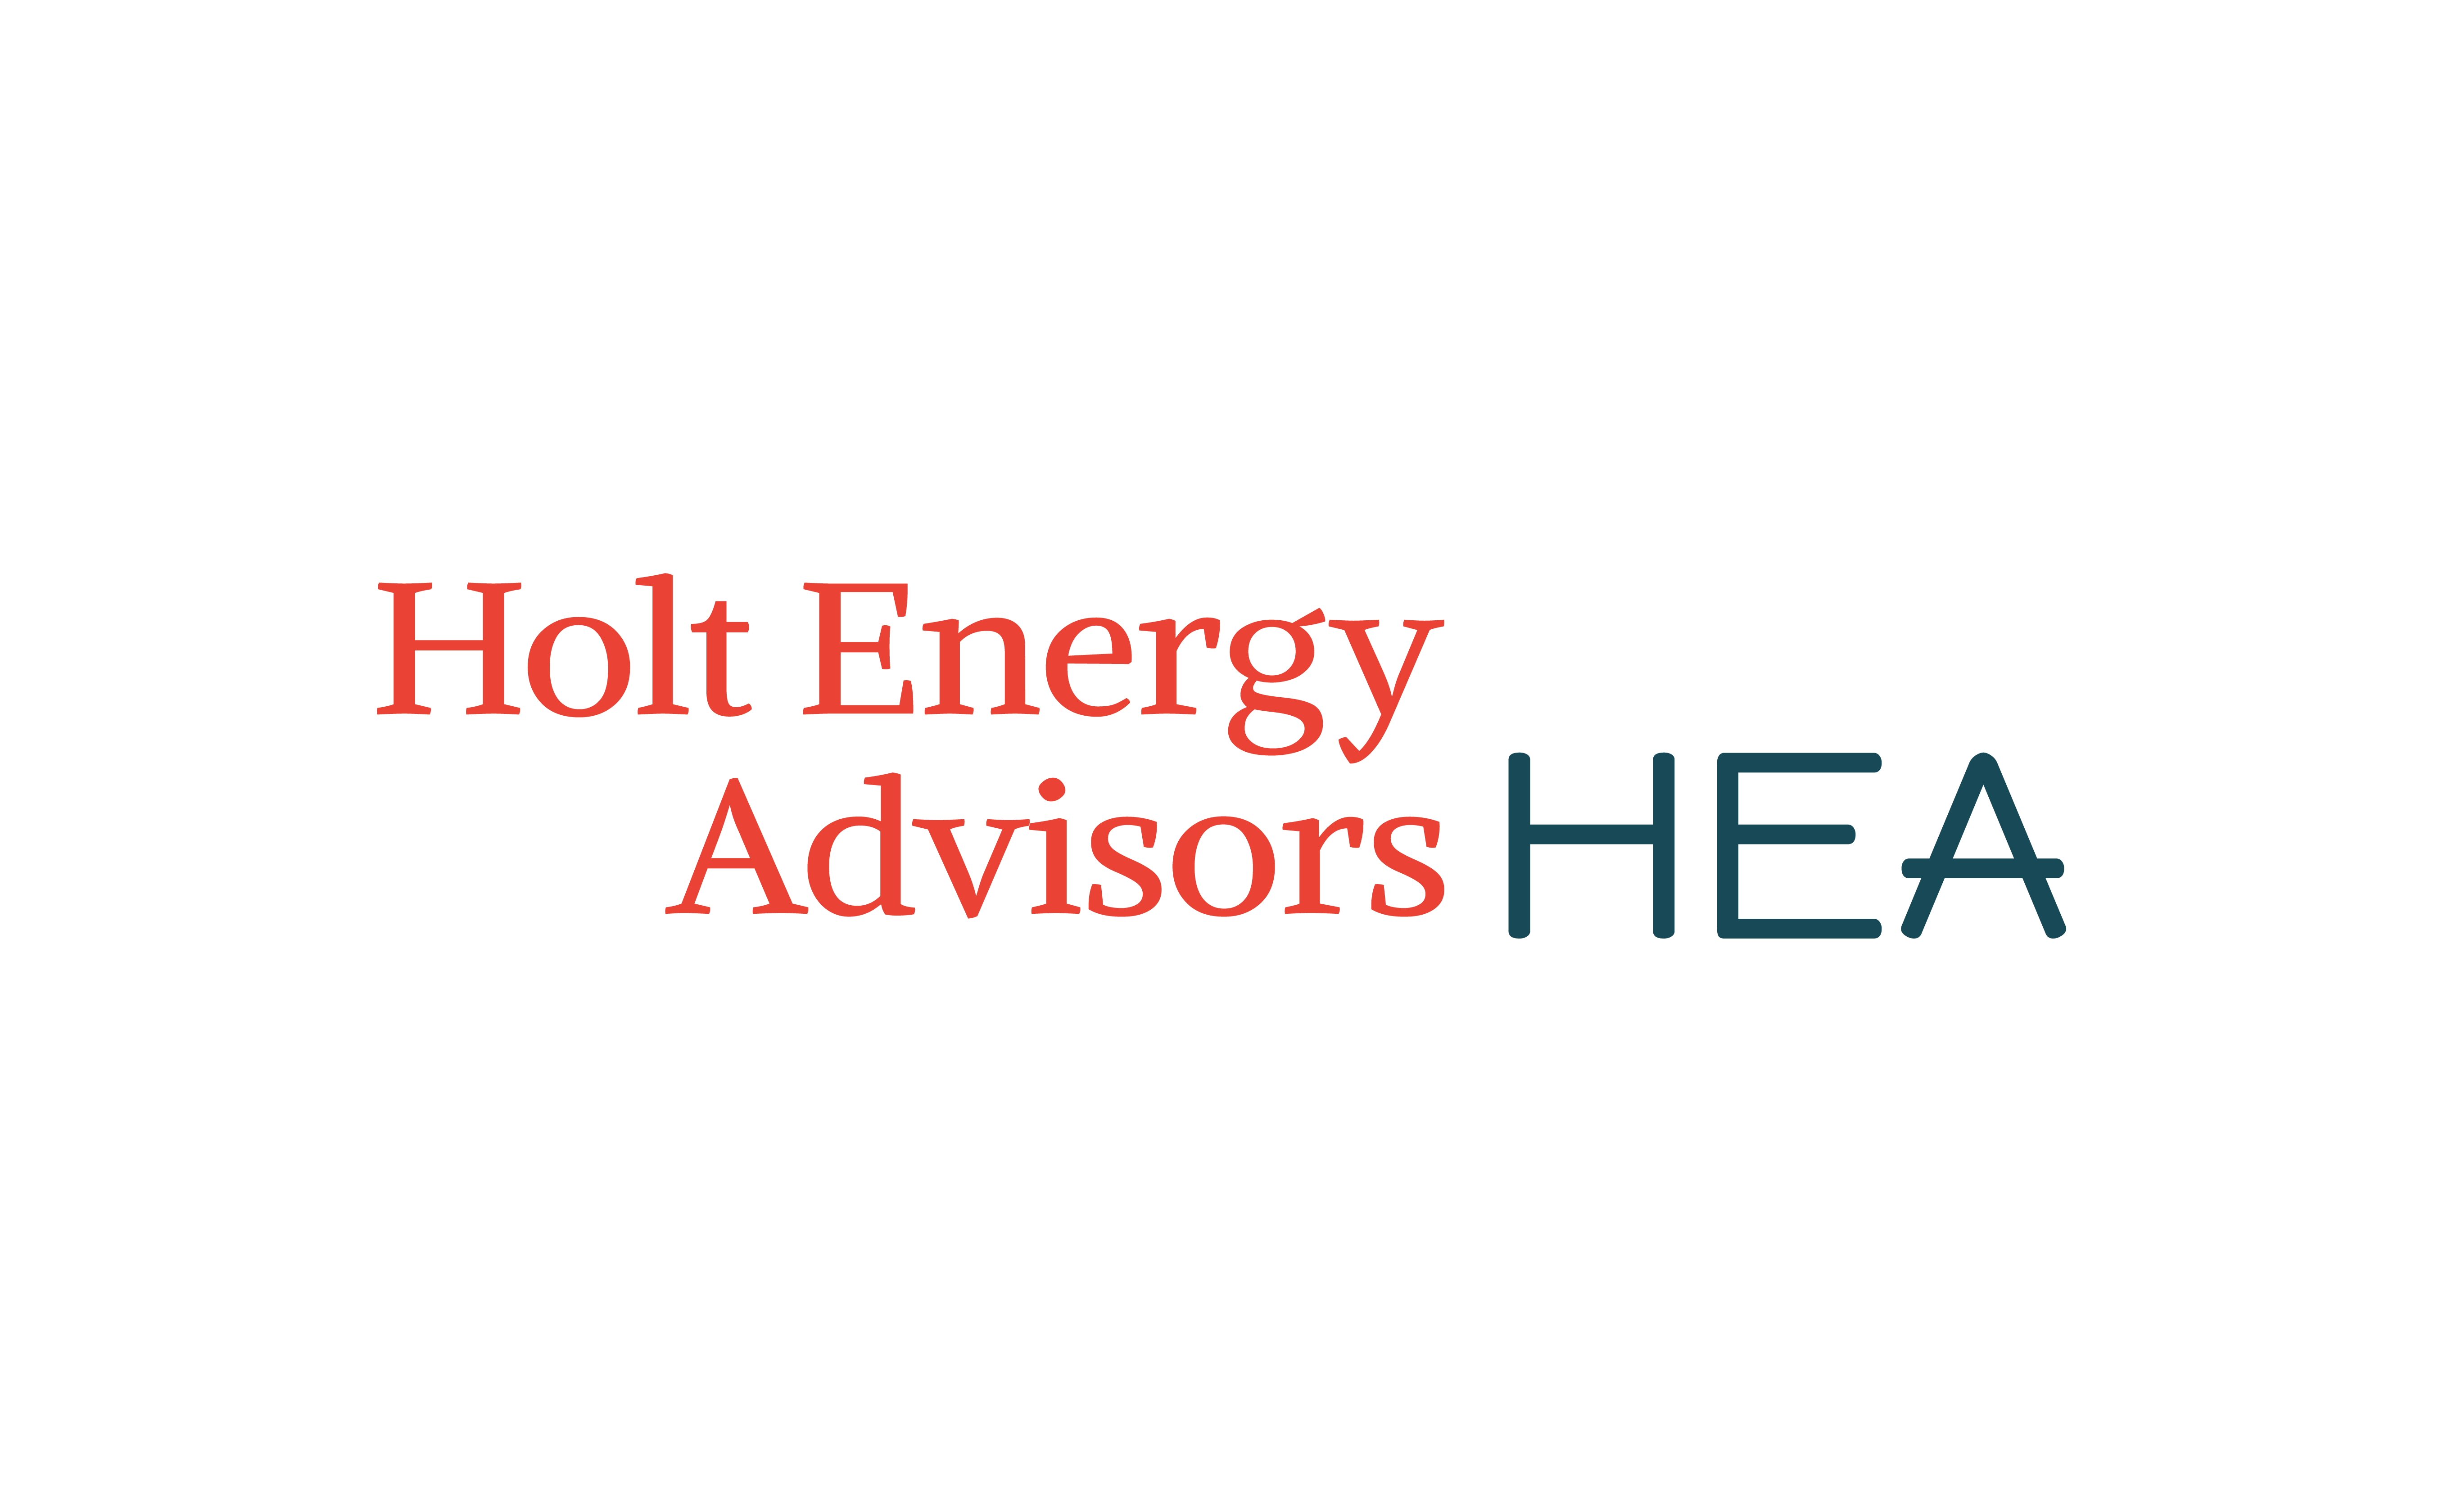 Holt Energy Advisors Ltd